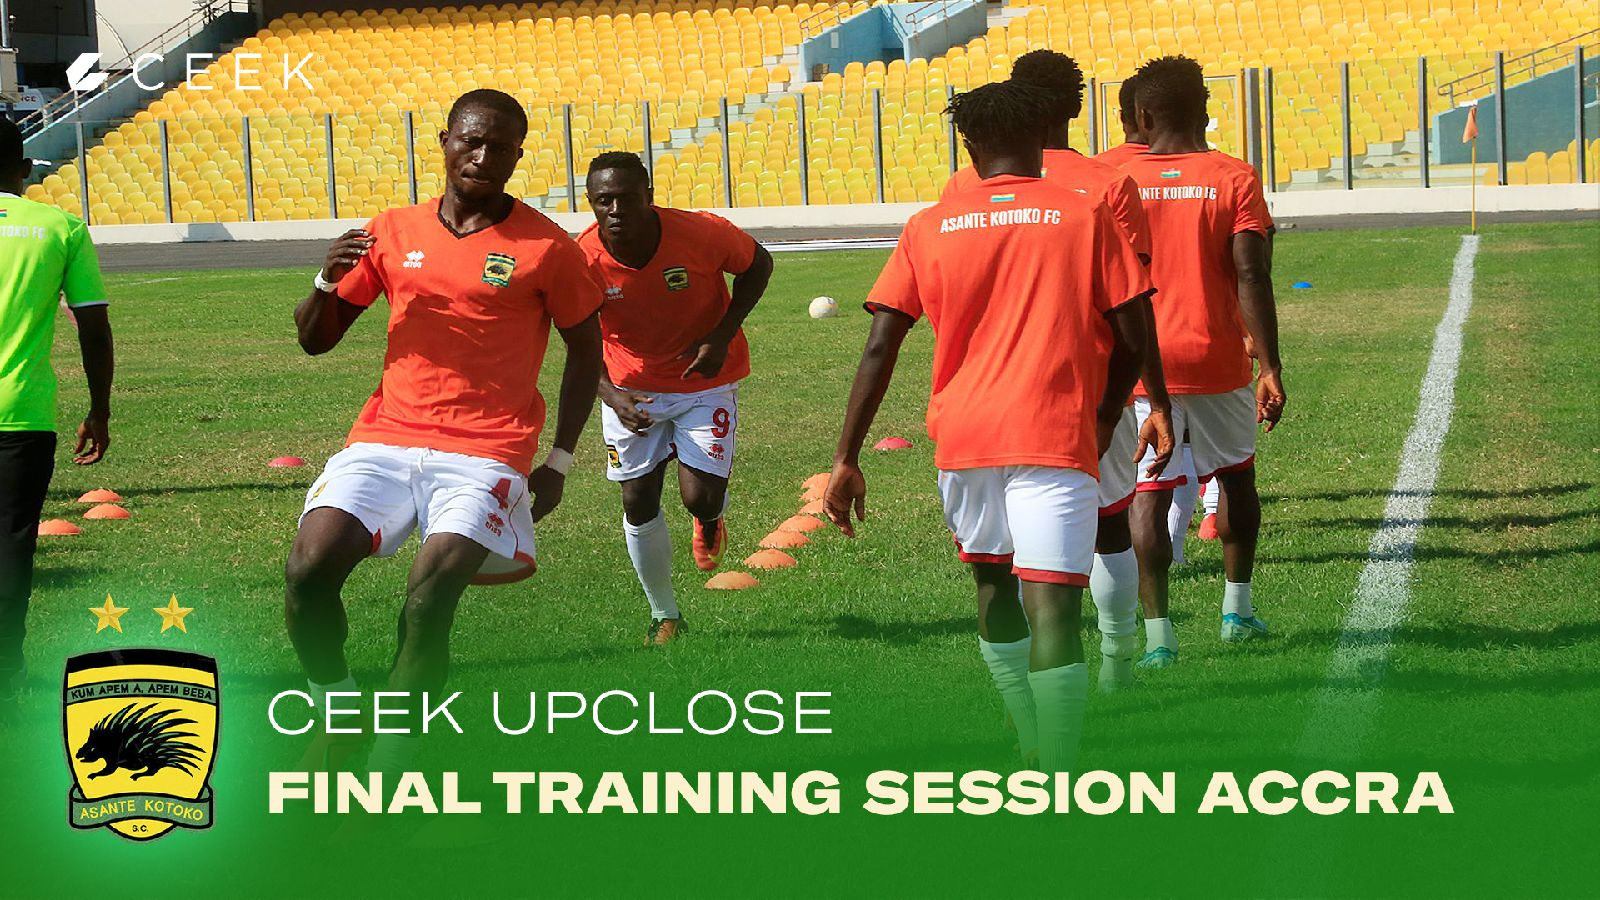 Final Training Session Accra